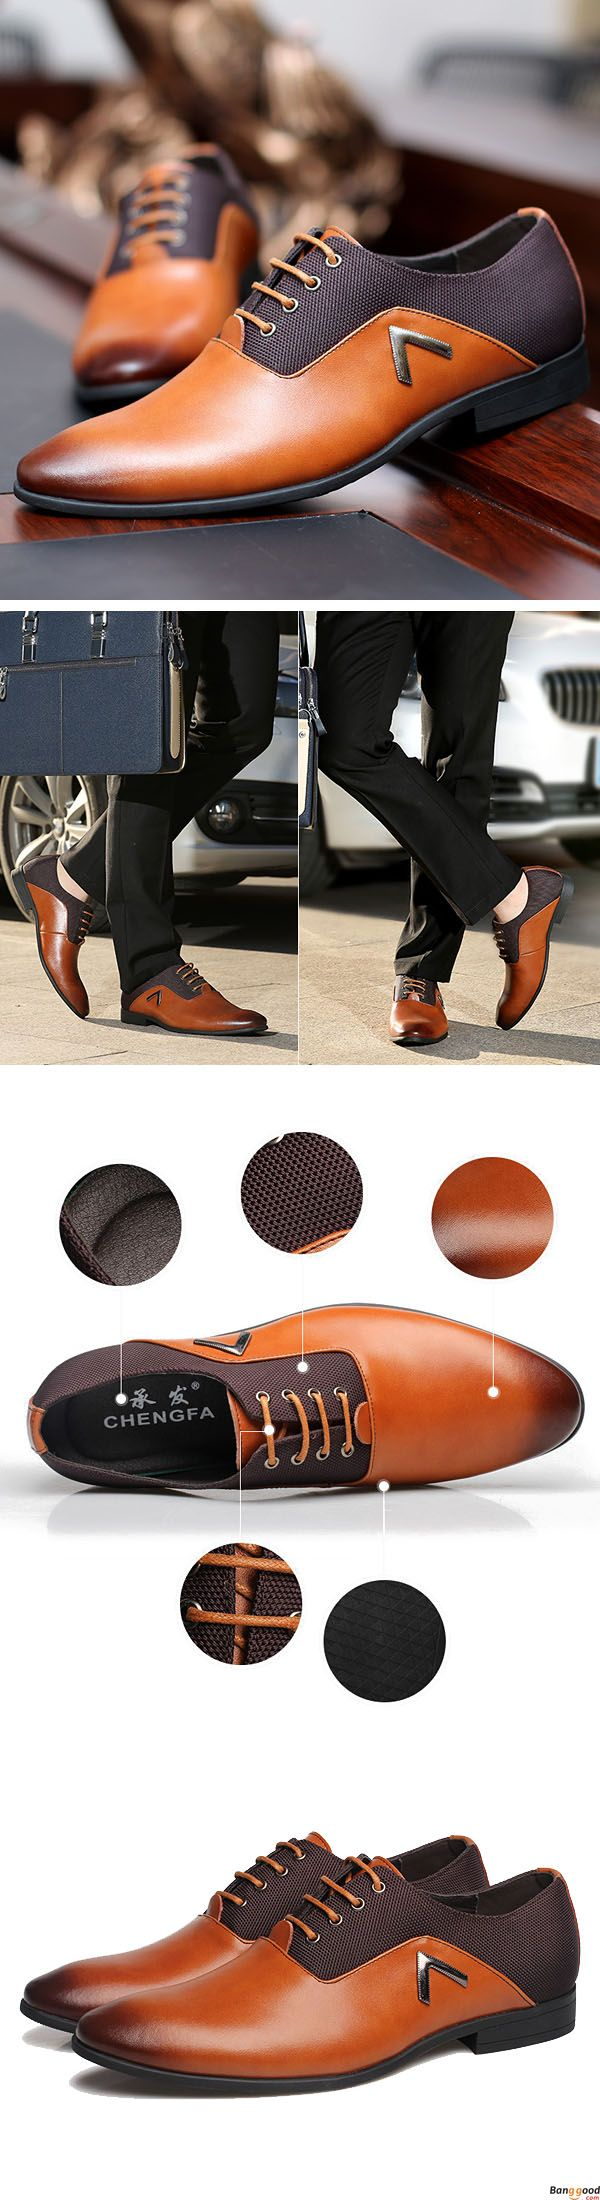 US$42.79+ Free Shipping. 3 colors available. US Size 6.5-10.5 Men Casual Soft …